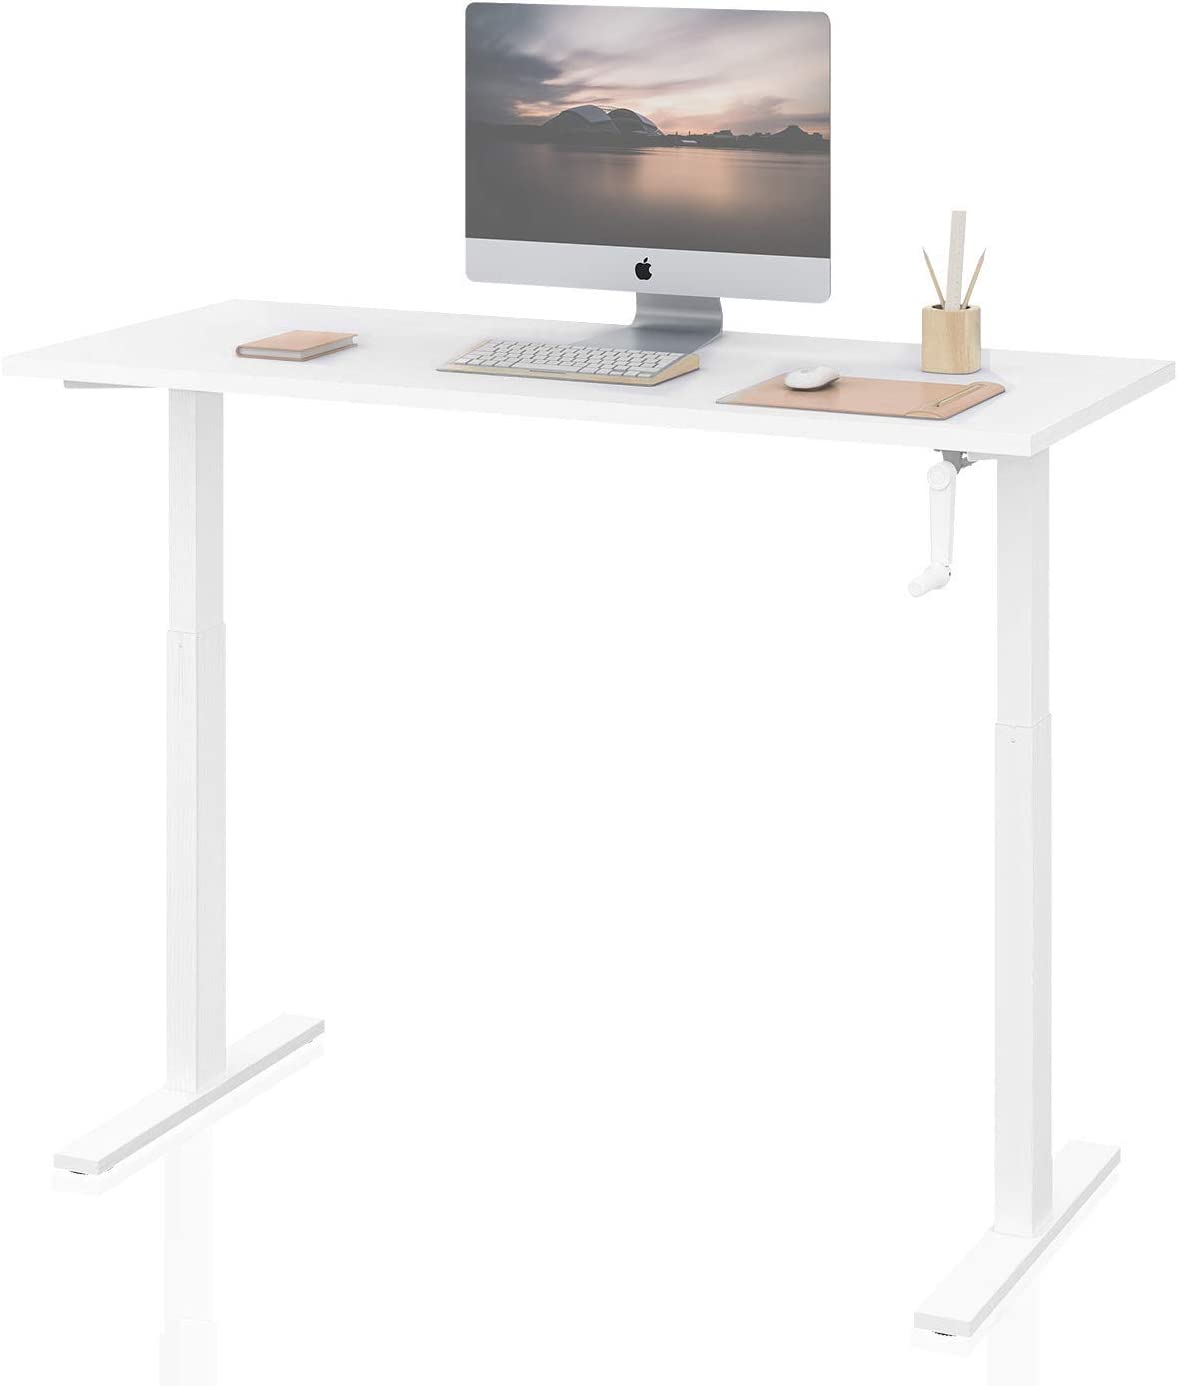 """DEVAISE Standing Desk - 55"""" Adjustable Sit to Stand Up Desk with Crank Handle, White"""